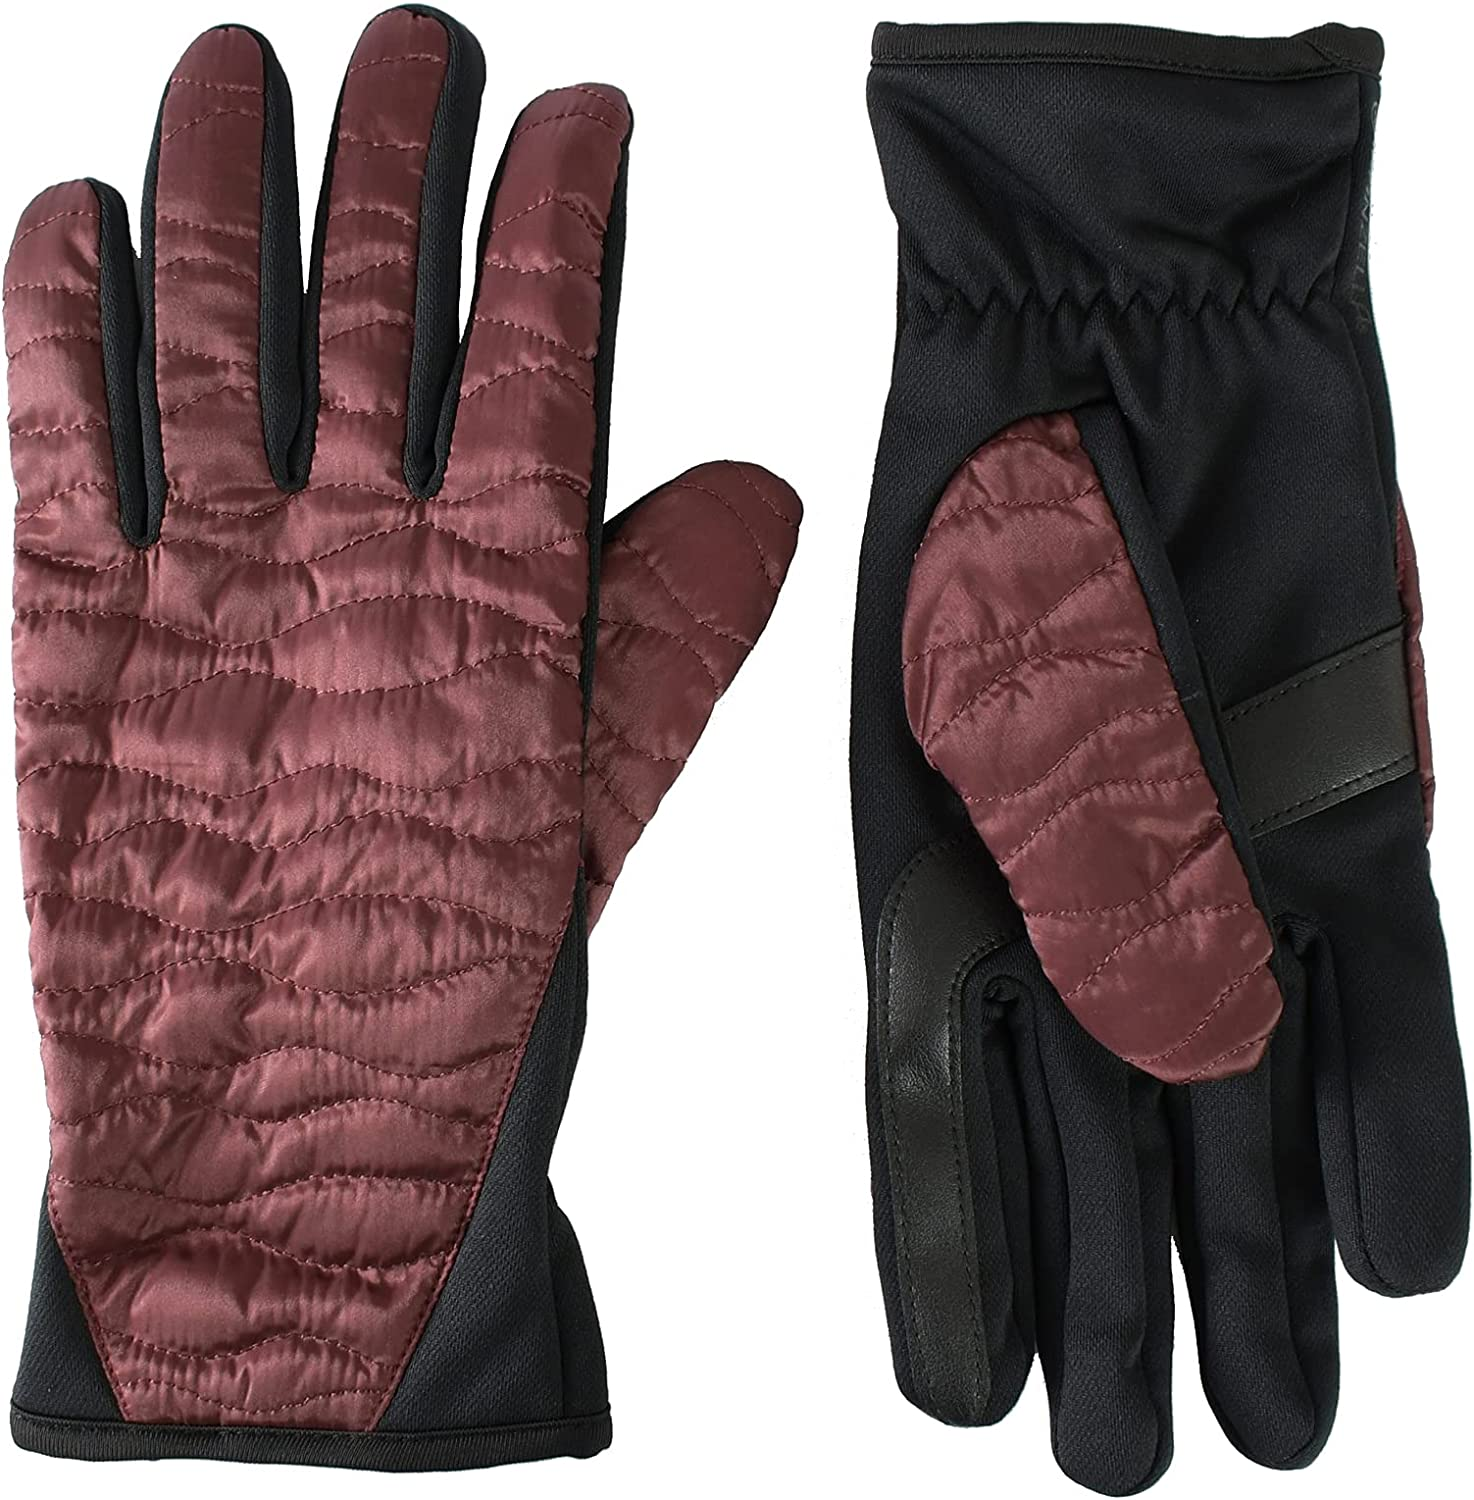 Manzella womens Bristol Touchtip Cold Weather Glove, Touchscreen Capable